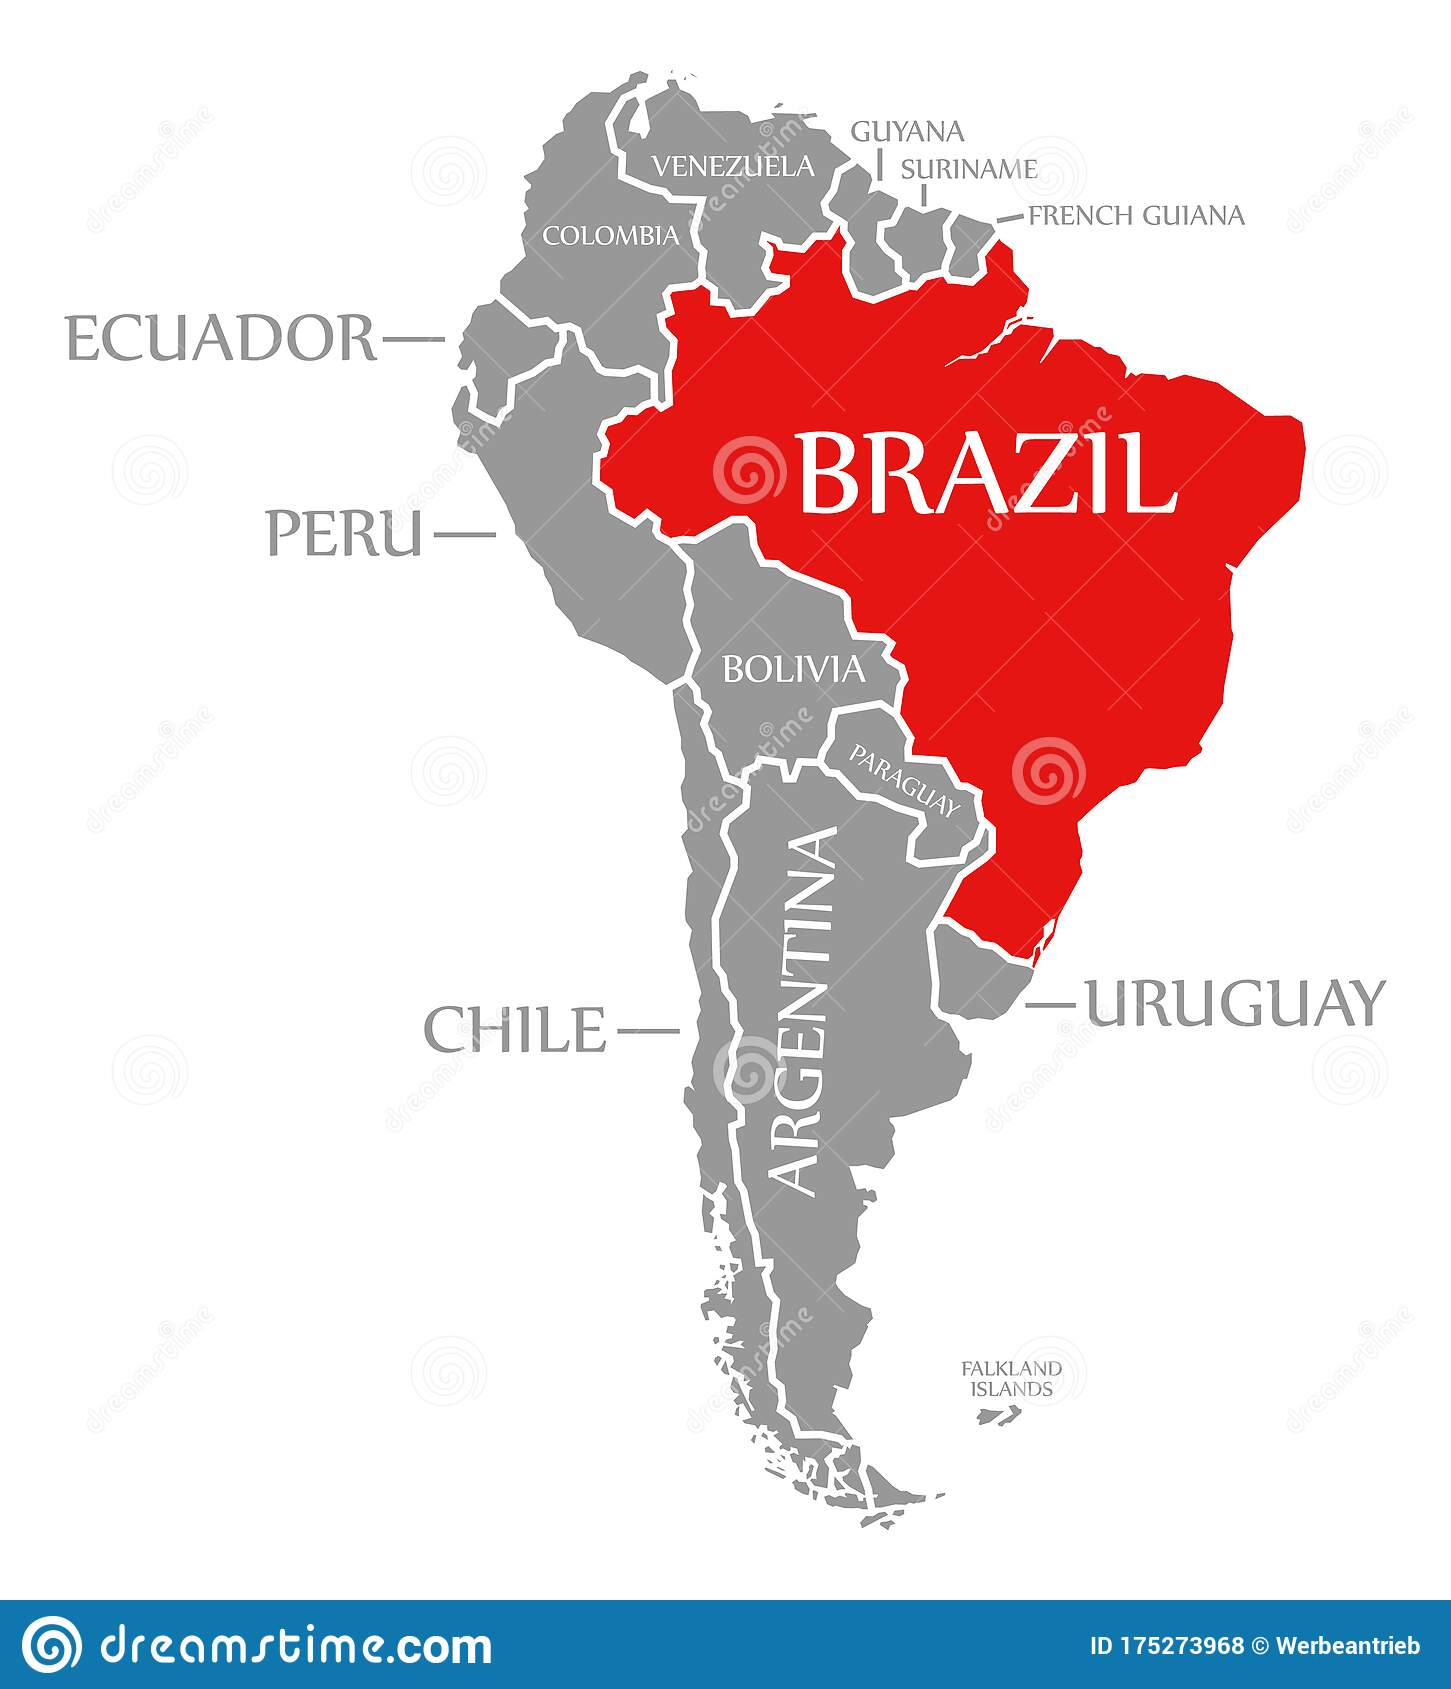 Brazil Red Highlighted In Continent Map Of South America Stock